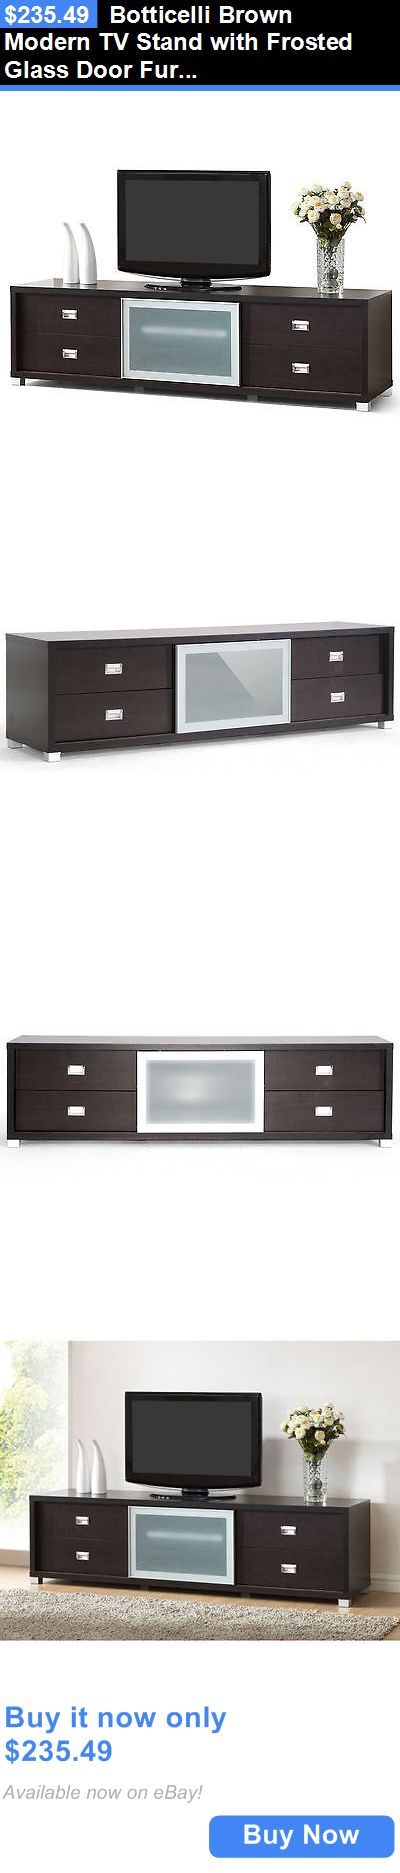 Entertainment Units TV Stands: Botticelli Brown Modern Tv Stand With Frosted Glass Door Furniture Home Media BUY IT NOW ONLY: $235.49